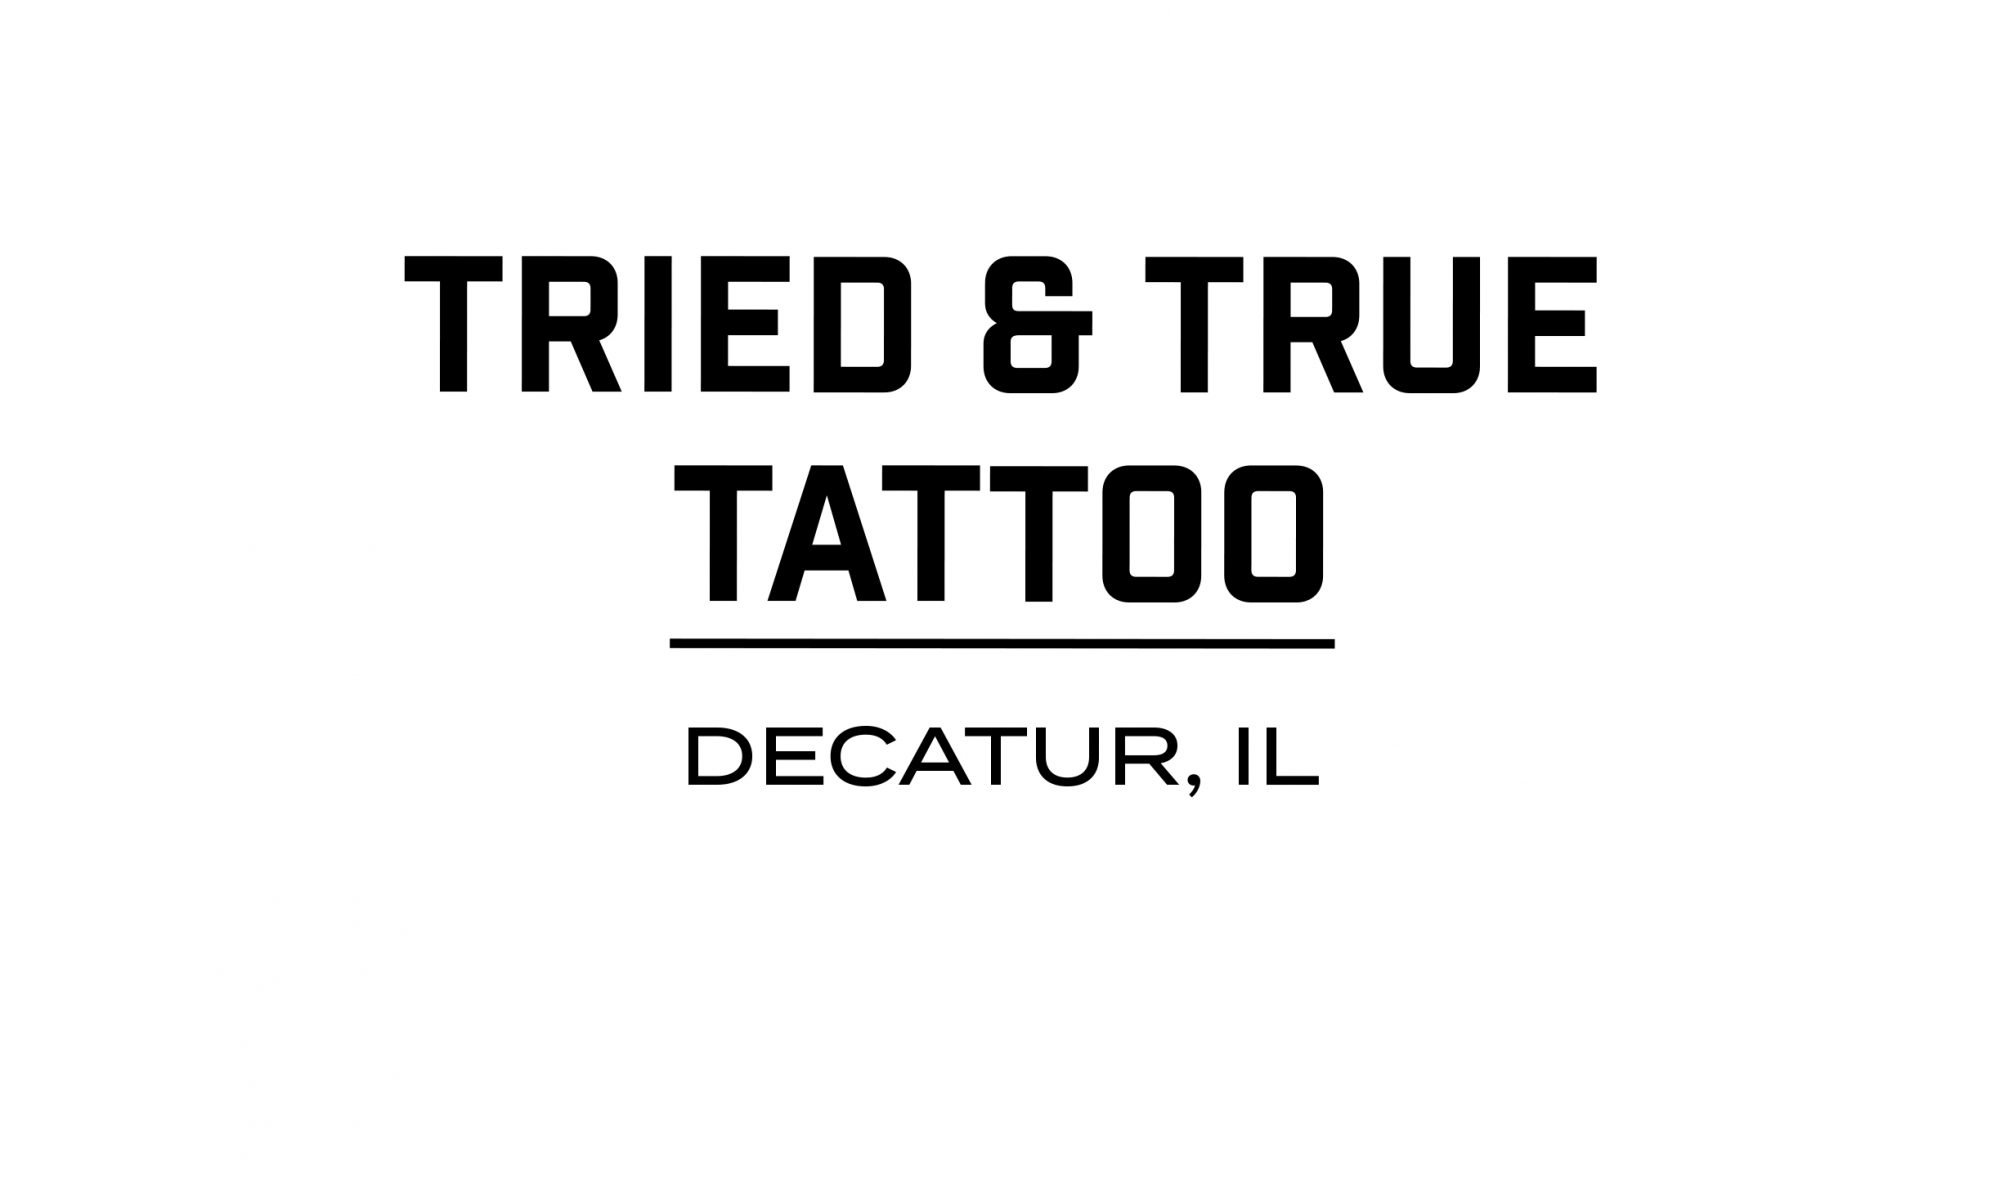 Tried & True Tattoo